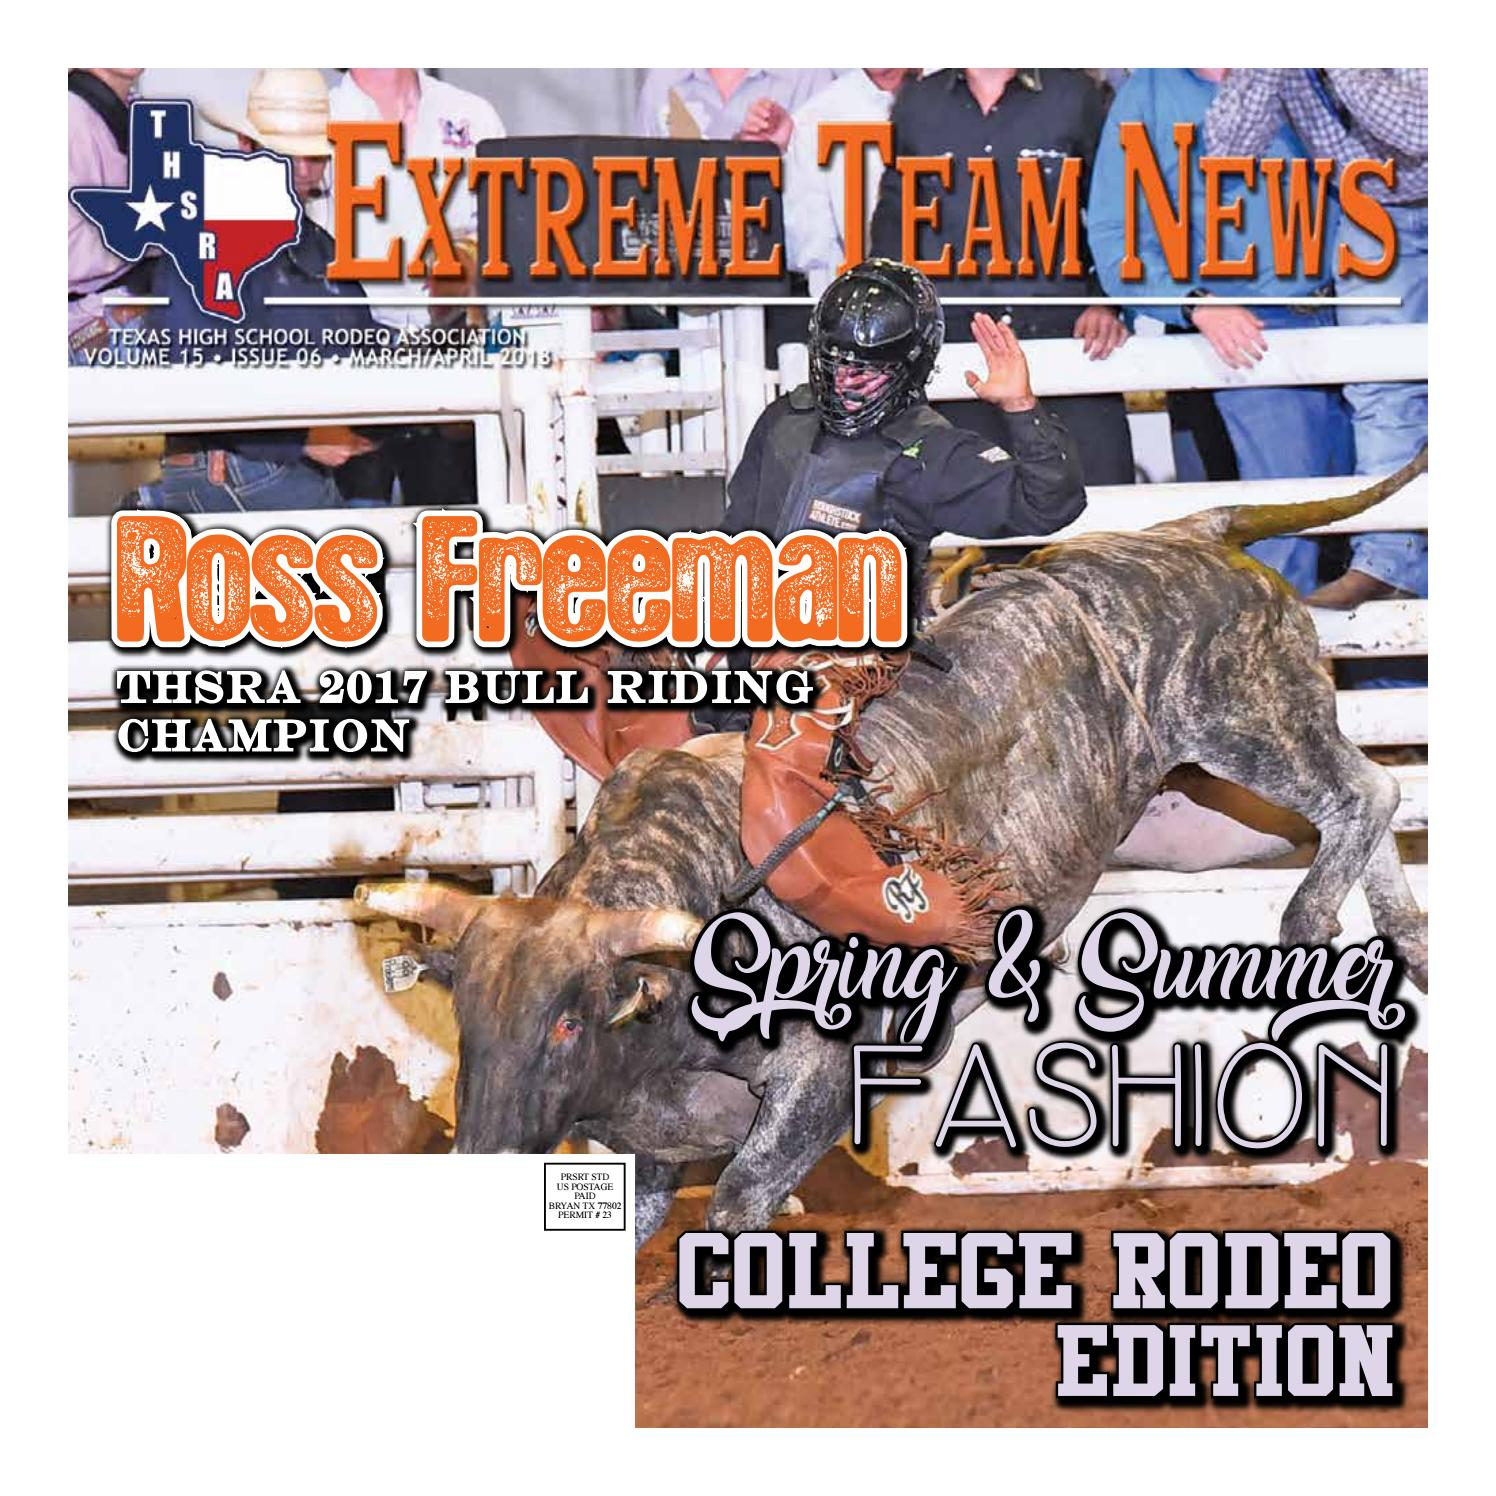 c0cafb596 Extreme Team News - March/April 2018 by Texas High School Rodeo ...